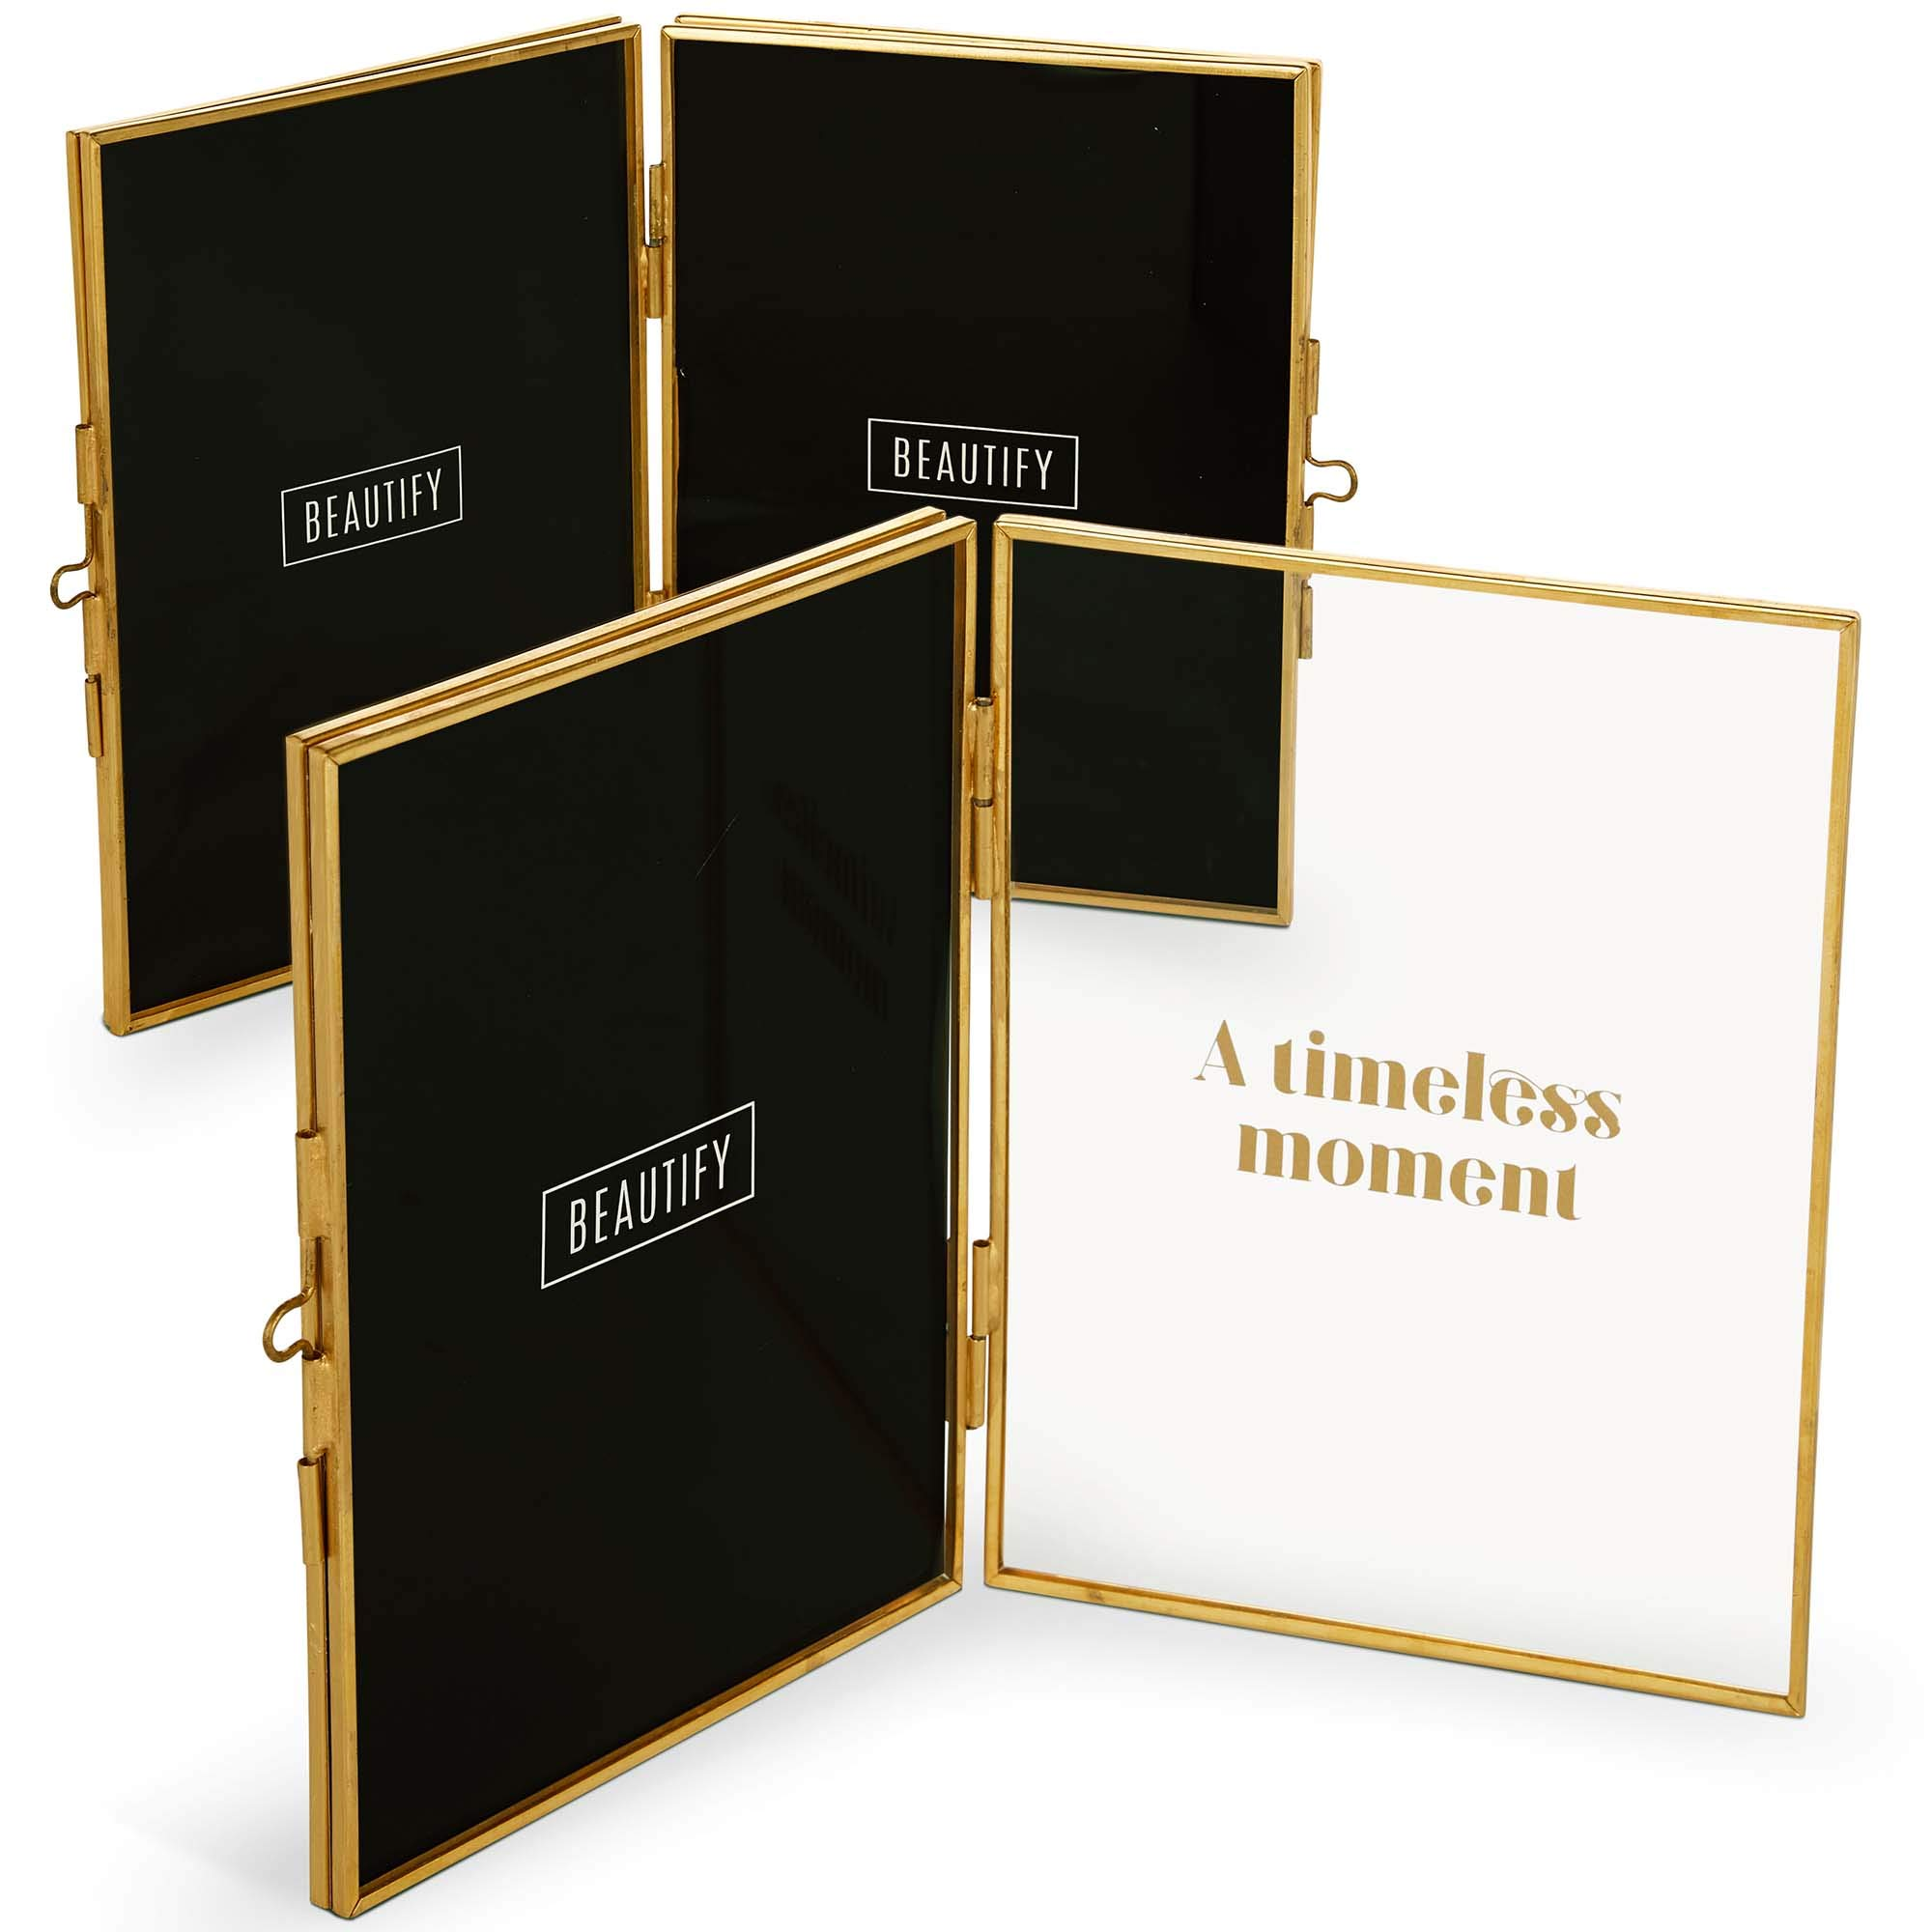 """Beautify Double Folding Picture Frame with Gold Brass Metal Frame 5 X 7"""" Real Glass and Quote Set of 2 Photo Display Stand on Table - Ideal as Personalized Gift for Friends and Family"""